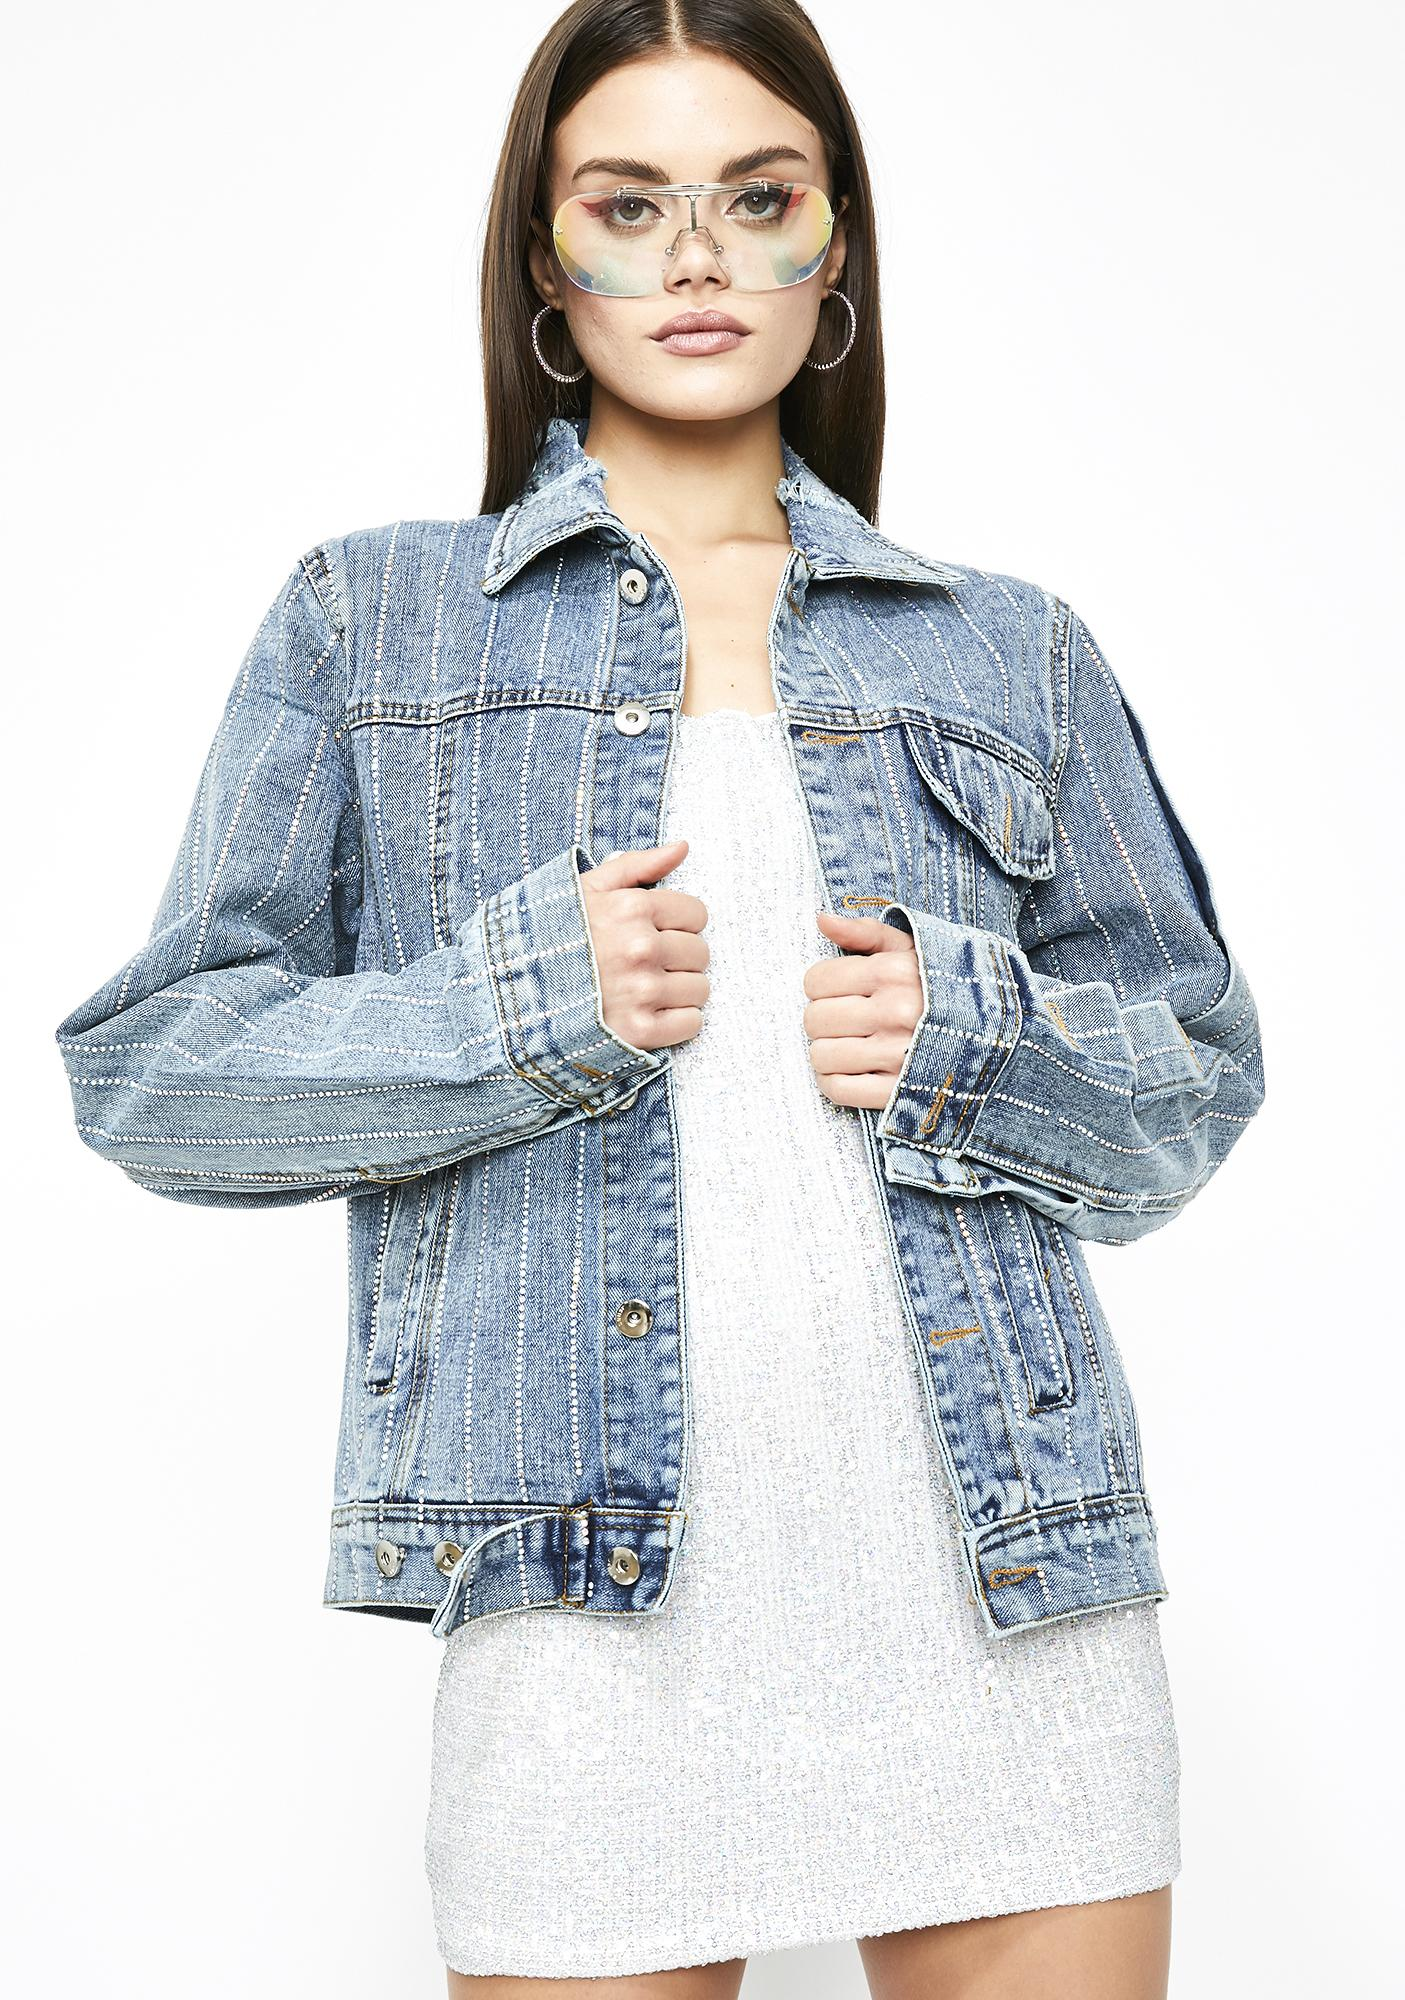 Bling Bling Denim Jacket